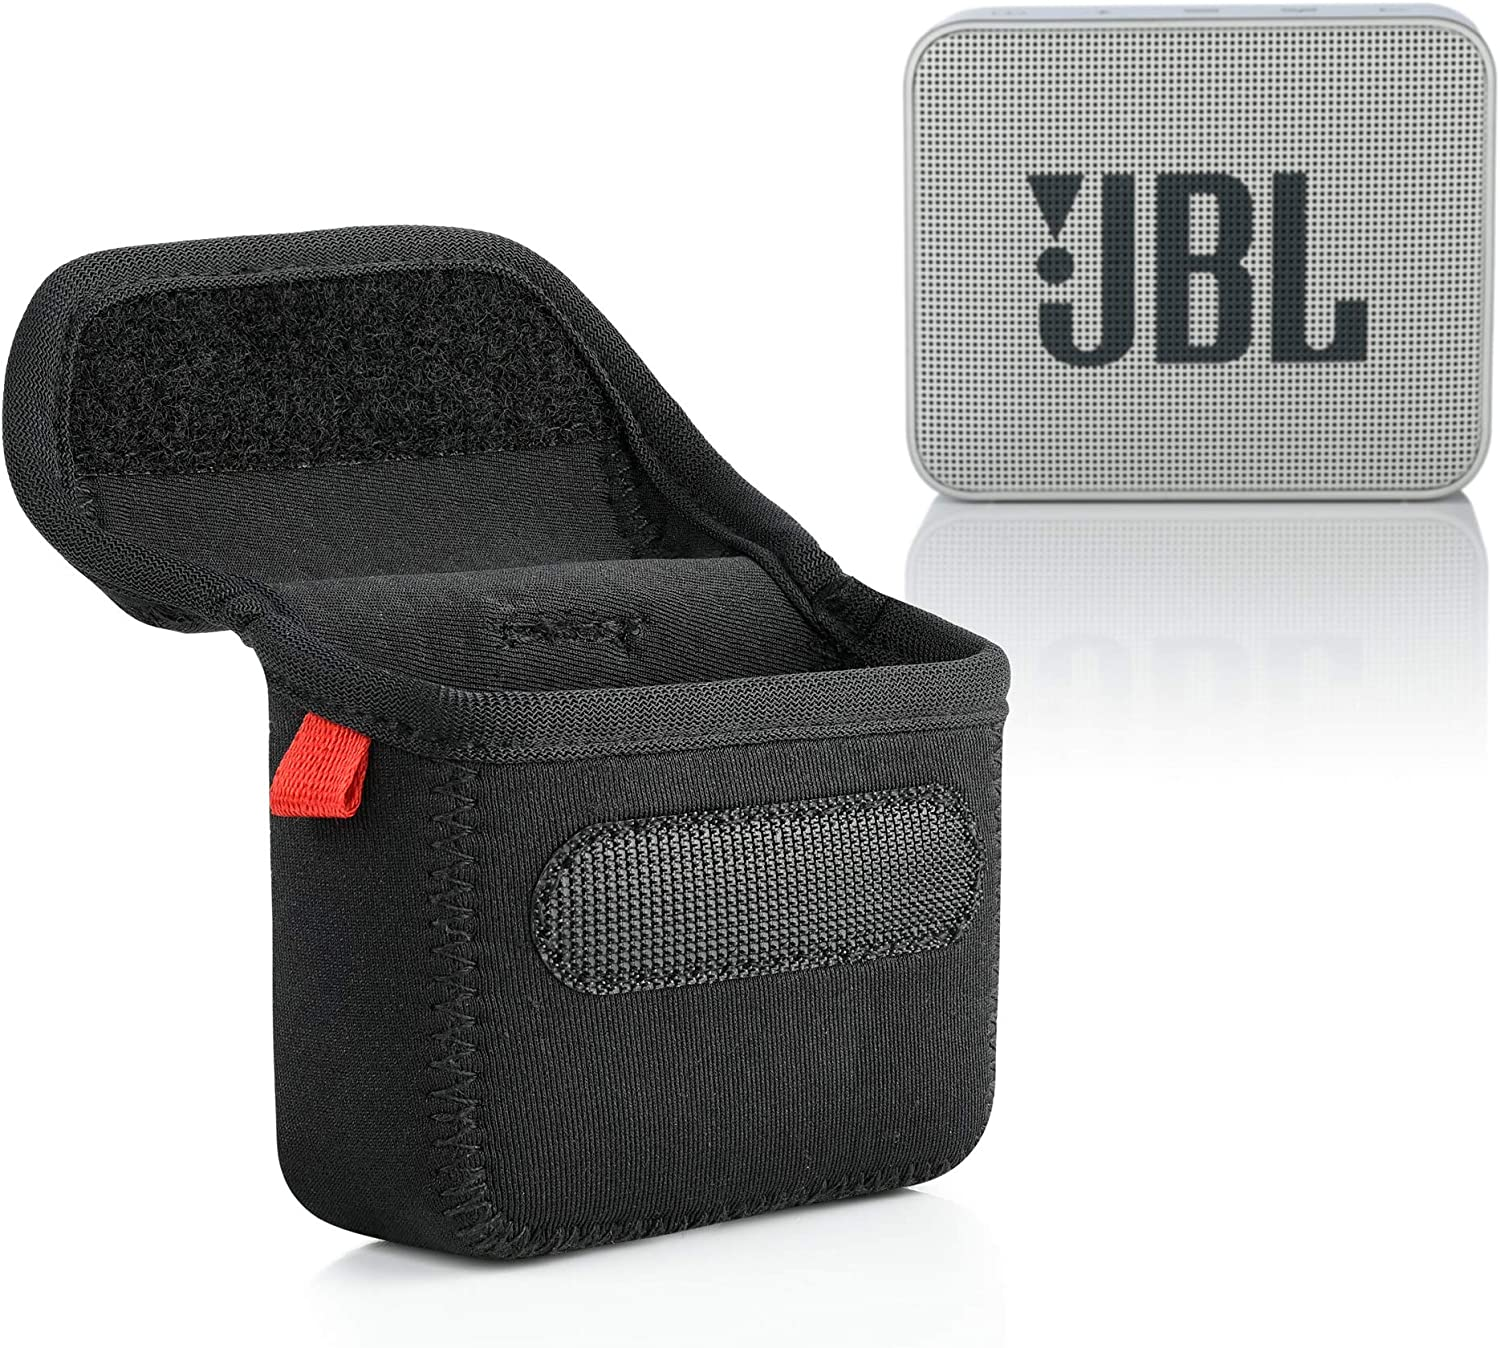 TXEsign Slim Water-Resistant Travel Carrying Case Bag Sleeve Cover Compatible with JBL GO 2 Portable Bluetooth Waterproof Speaker